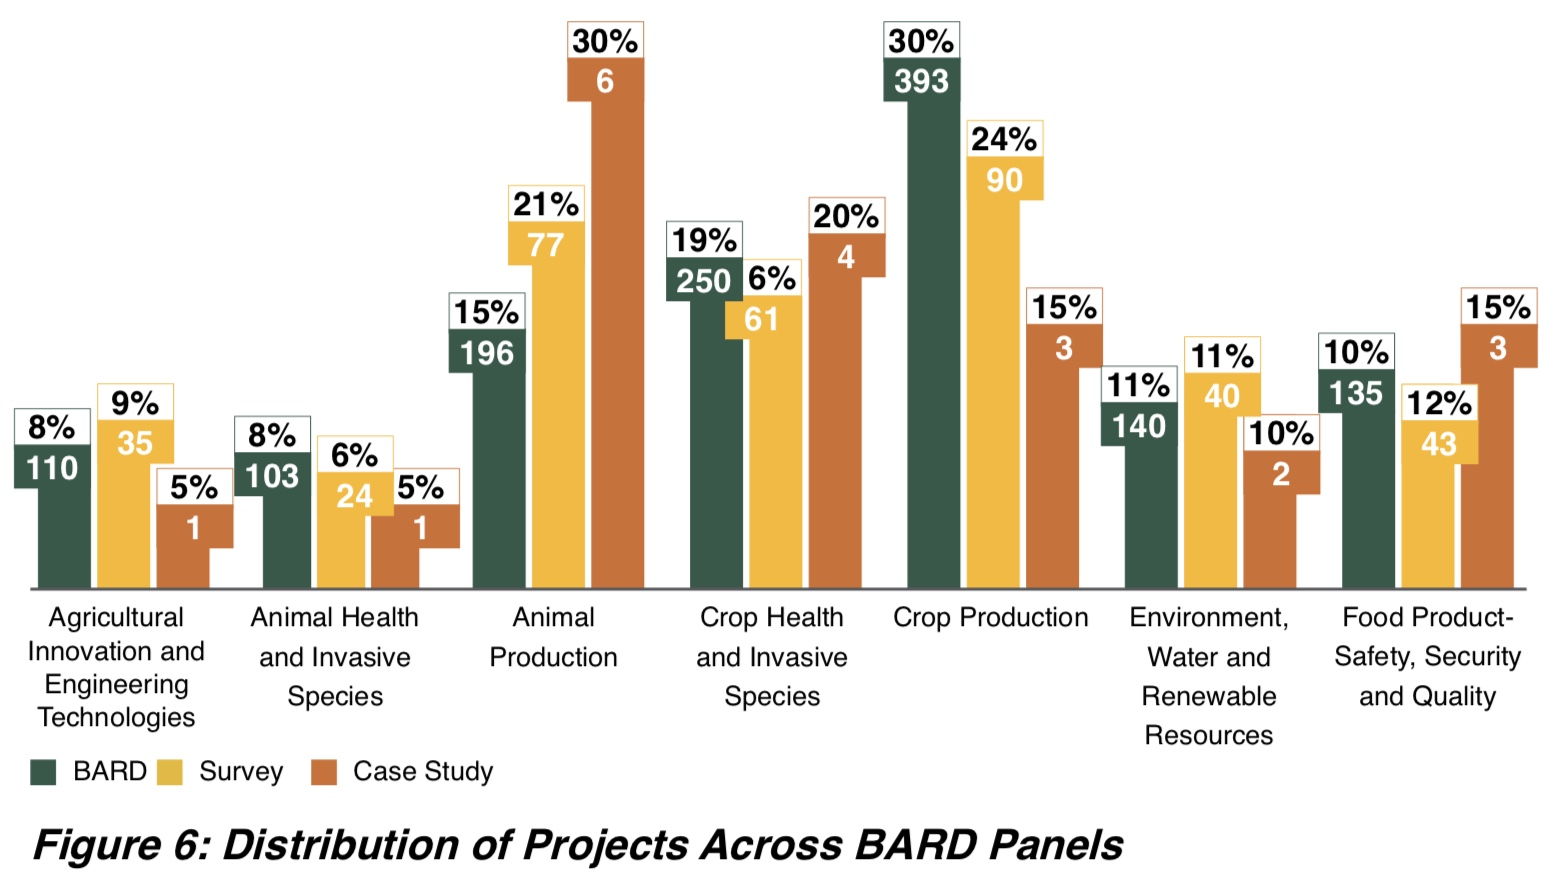 Figure 6: Distribution of Projects Across BARD Panels